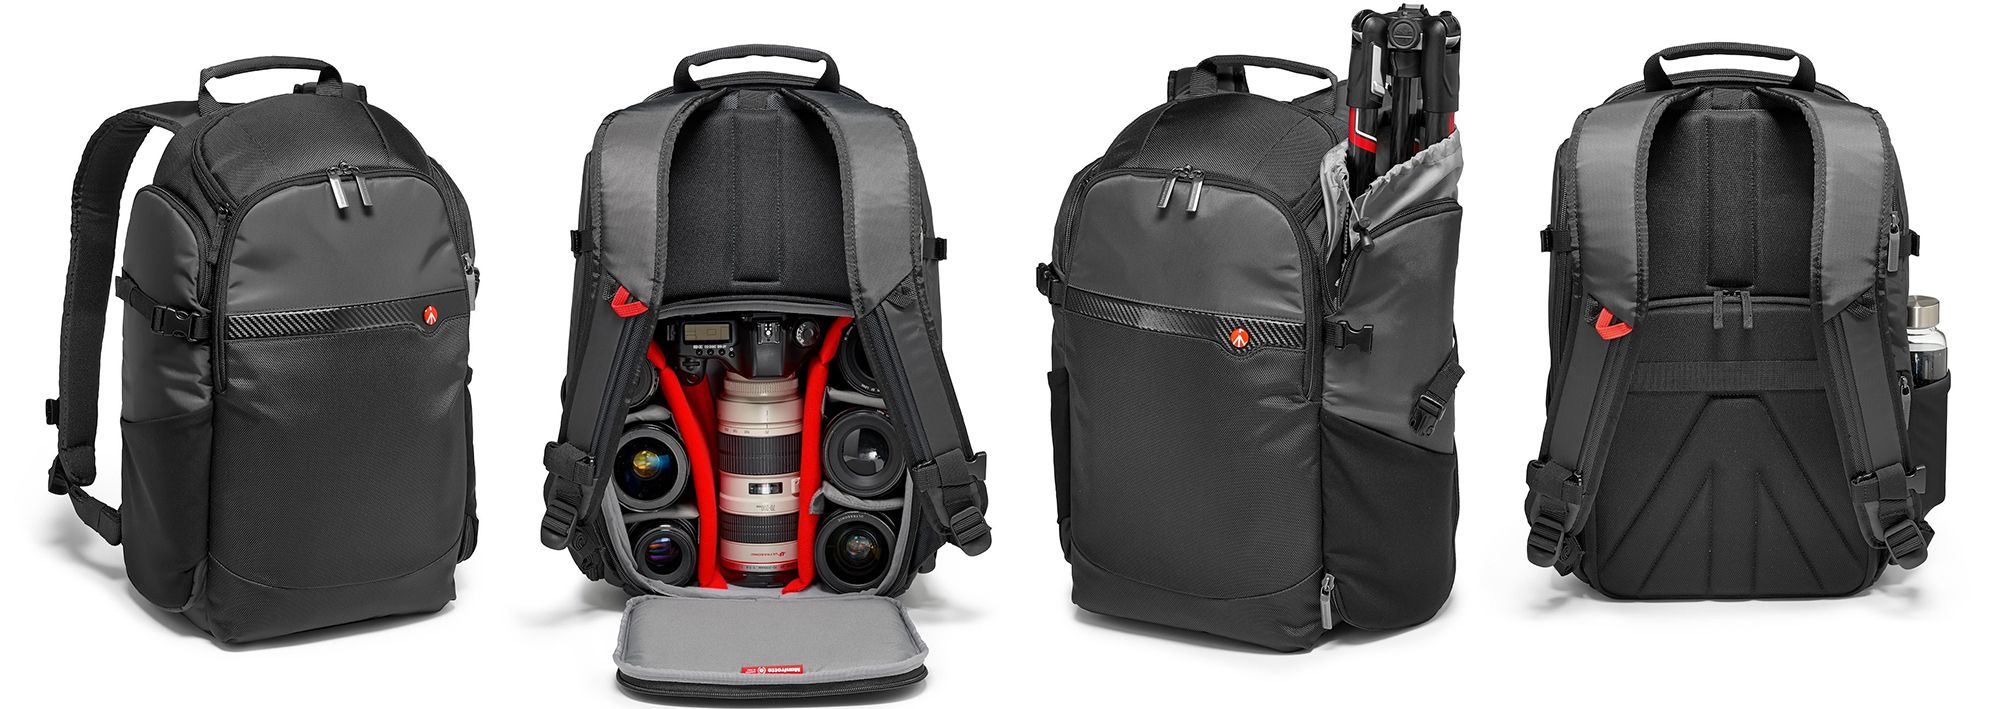 notícia BEF ADV BACKPACK - ¡Ya disponibles las nuevas Advanced Befree Backpack!